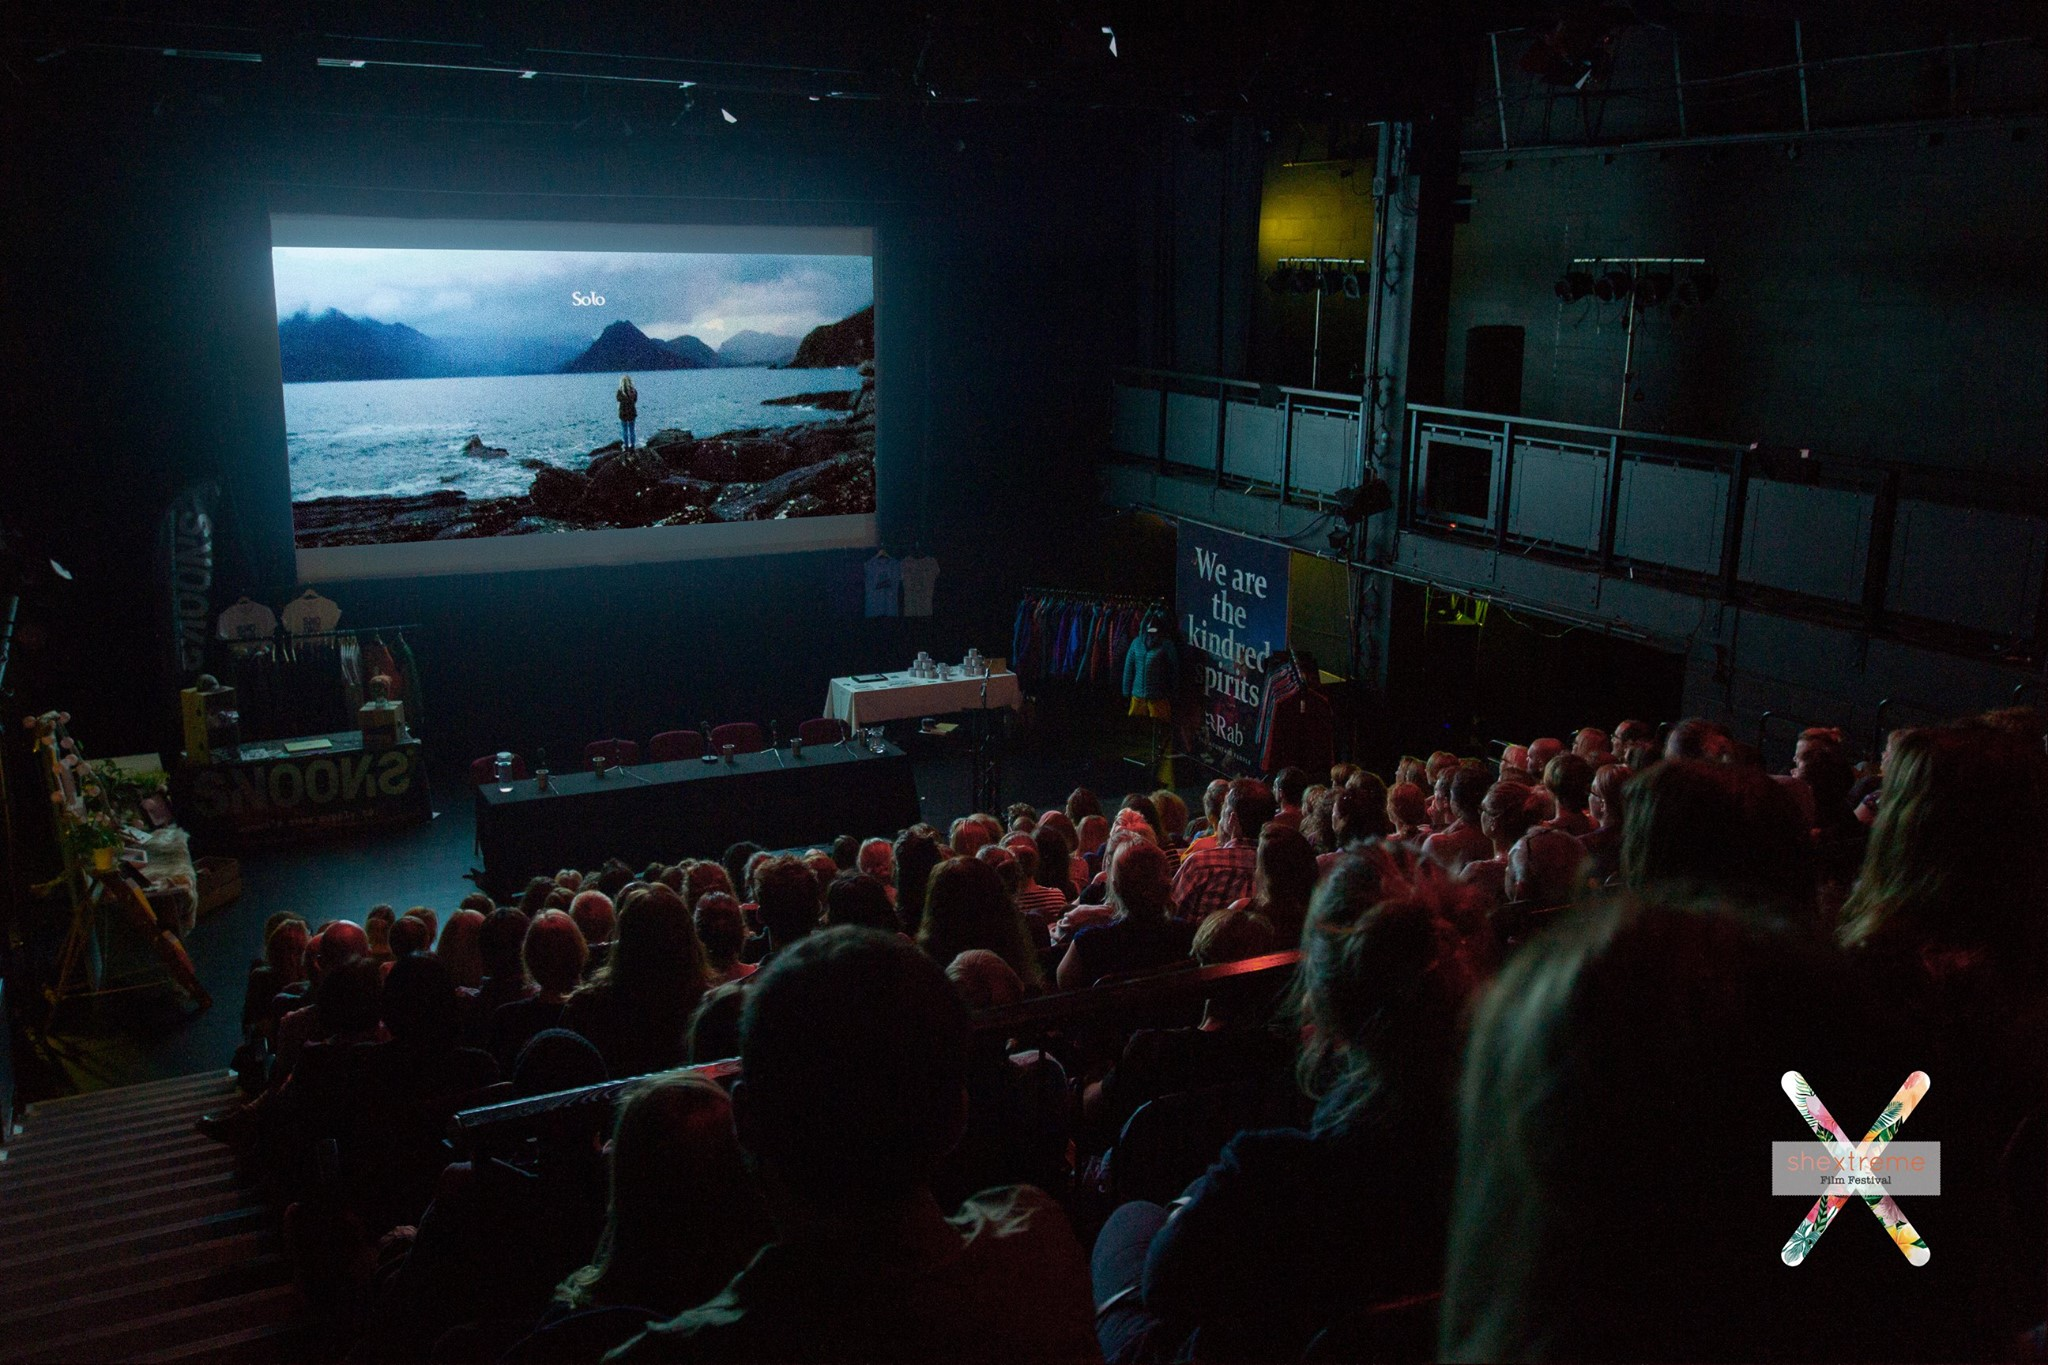 hextreme - Image from last year's audience at Shextreme Film Festival 2018: Image Credit: Emma Bell